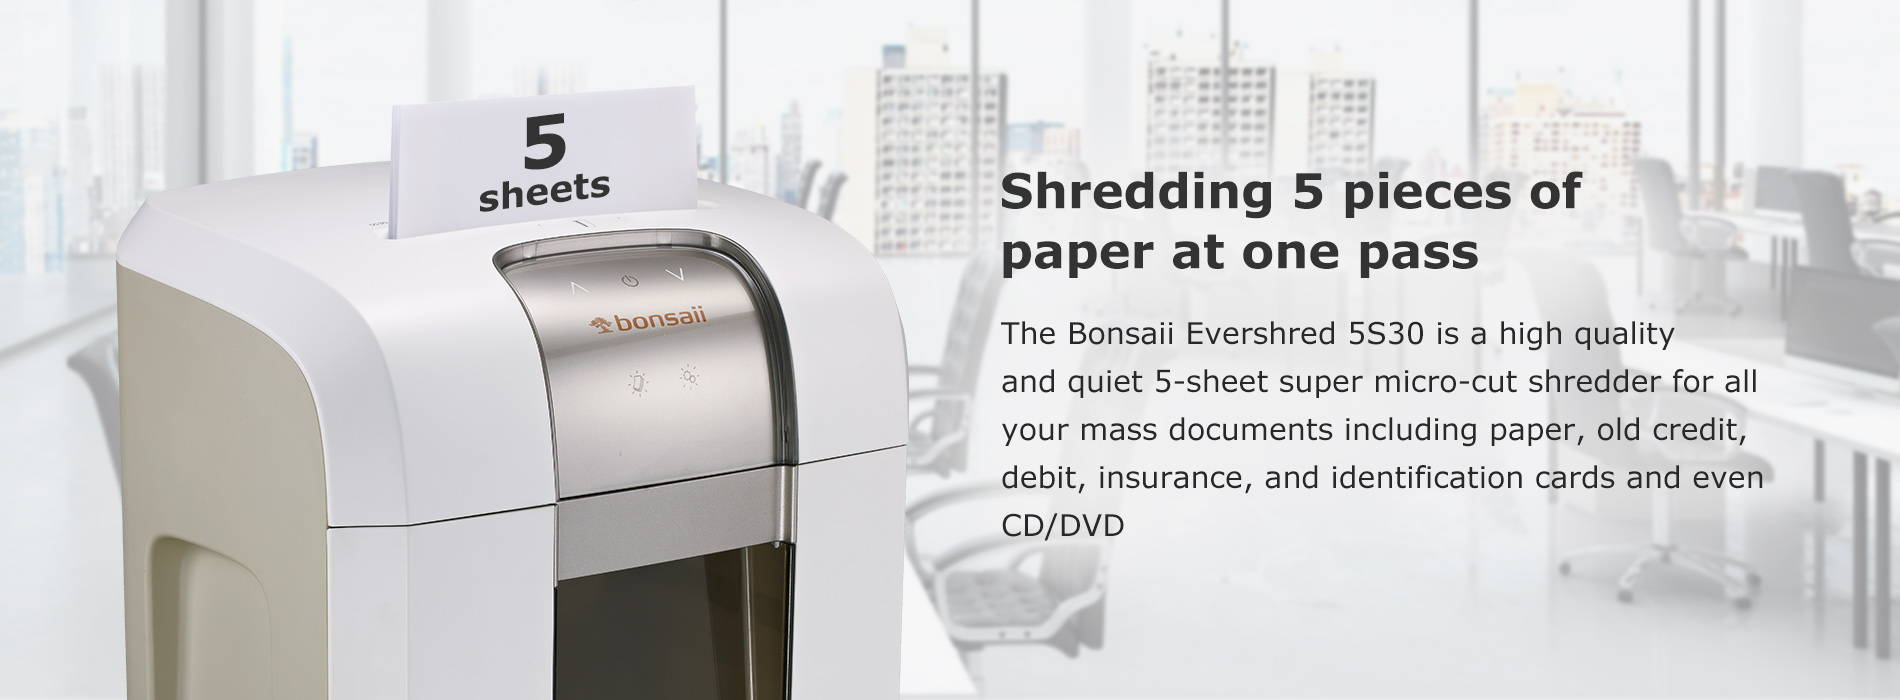 Shredding 5 pieces of paper at one pass  The Bonsaii Evershred 5S30 is a high quality and quiet 5-sheet super micro-cut shredder for all your mass documents including paper, old credit, debit, insurance, and identification cards and even CD/DVD